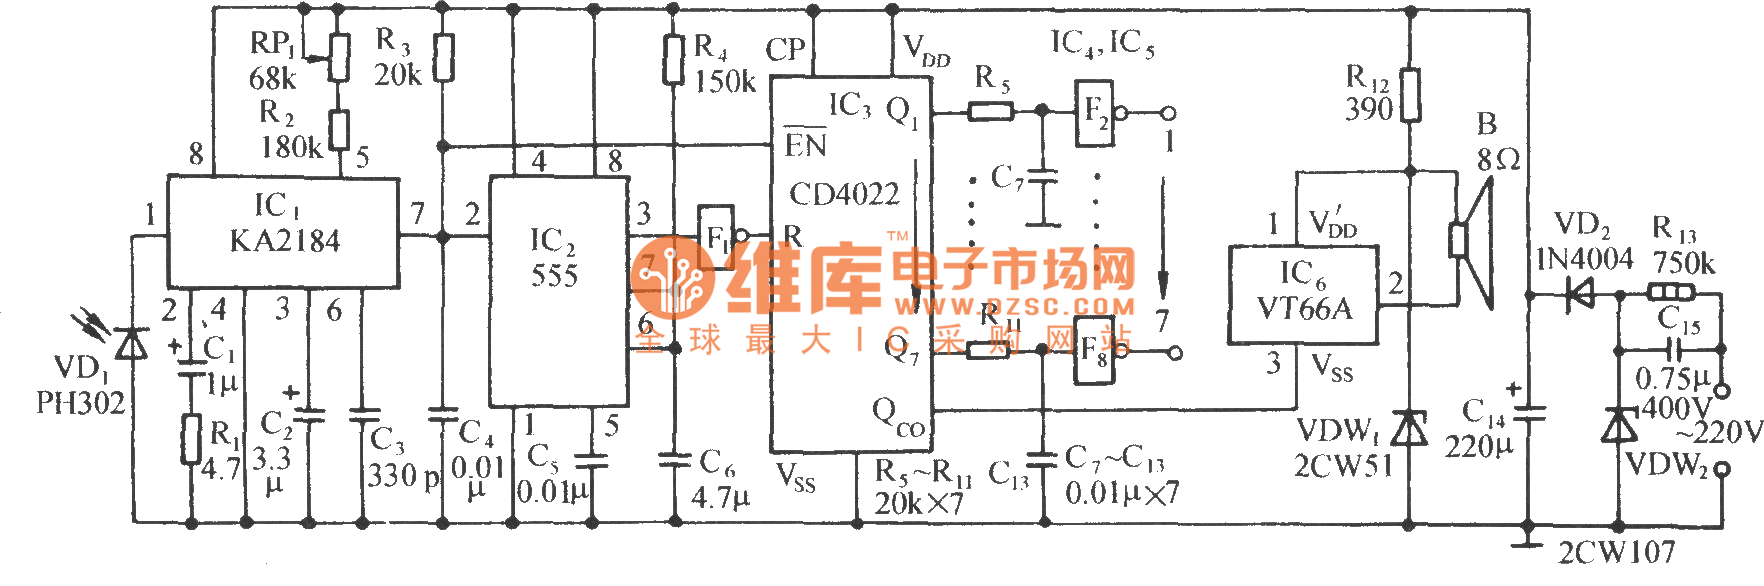 Pulse Dialing Seven Road Infrared Remote Control Circuit Diagram Index 21 555 Seekiccom